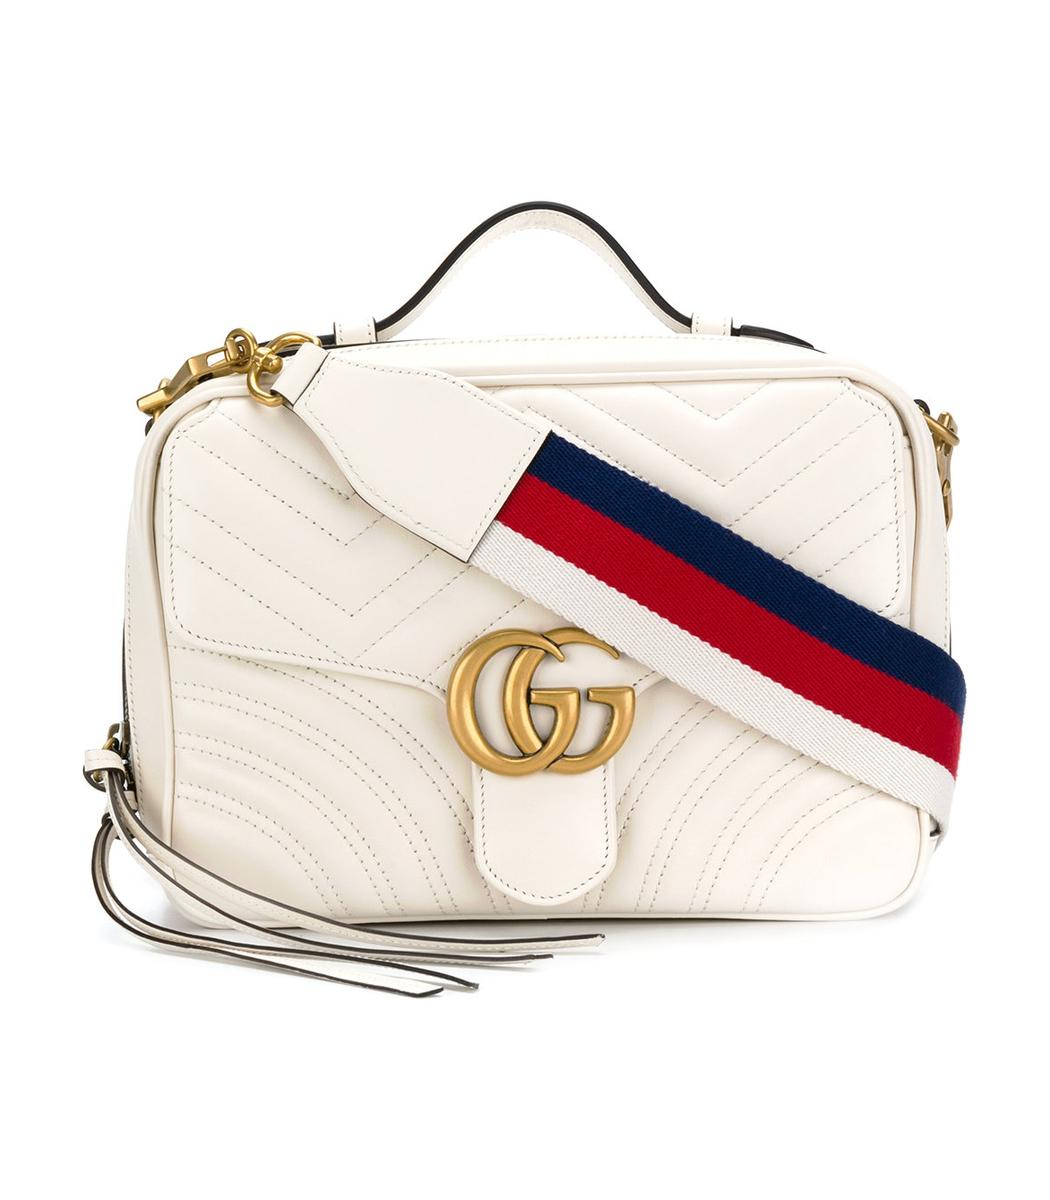 f65c87ac028 Lyst - Gucci White Gg Marmont Matelasse Camera Bag in White